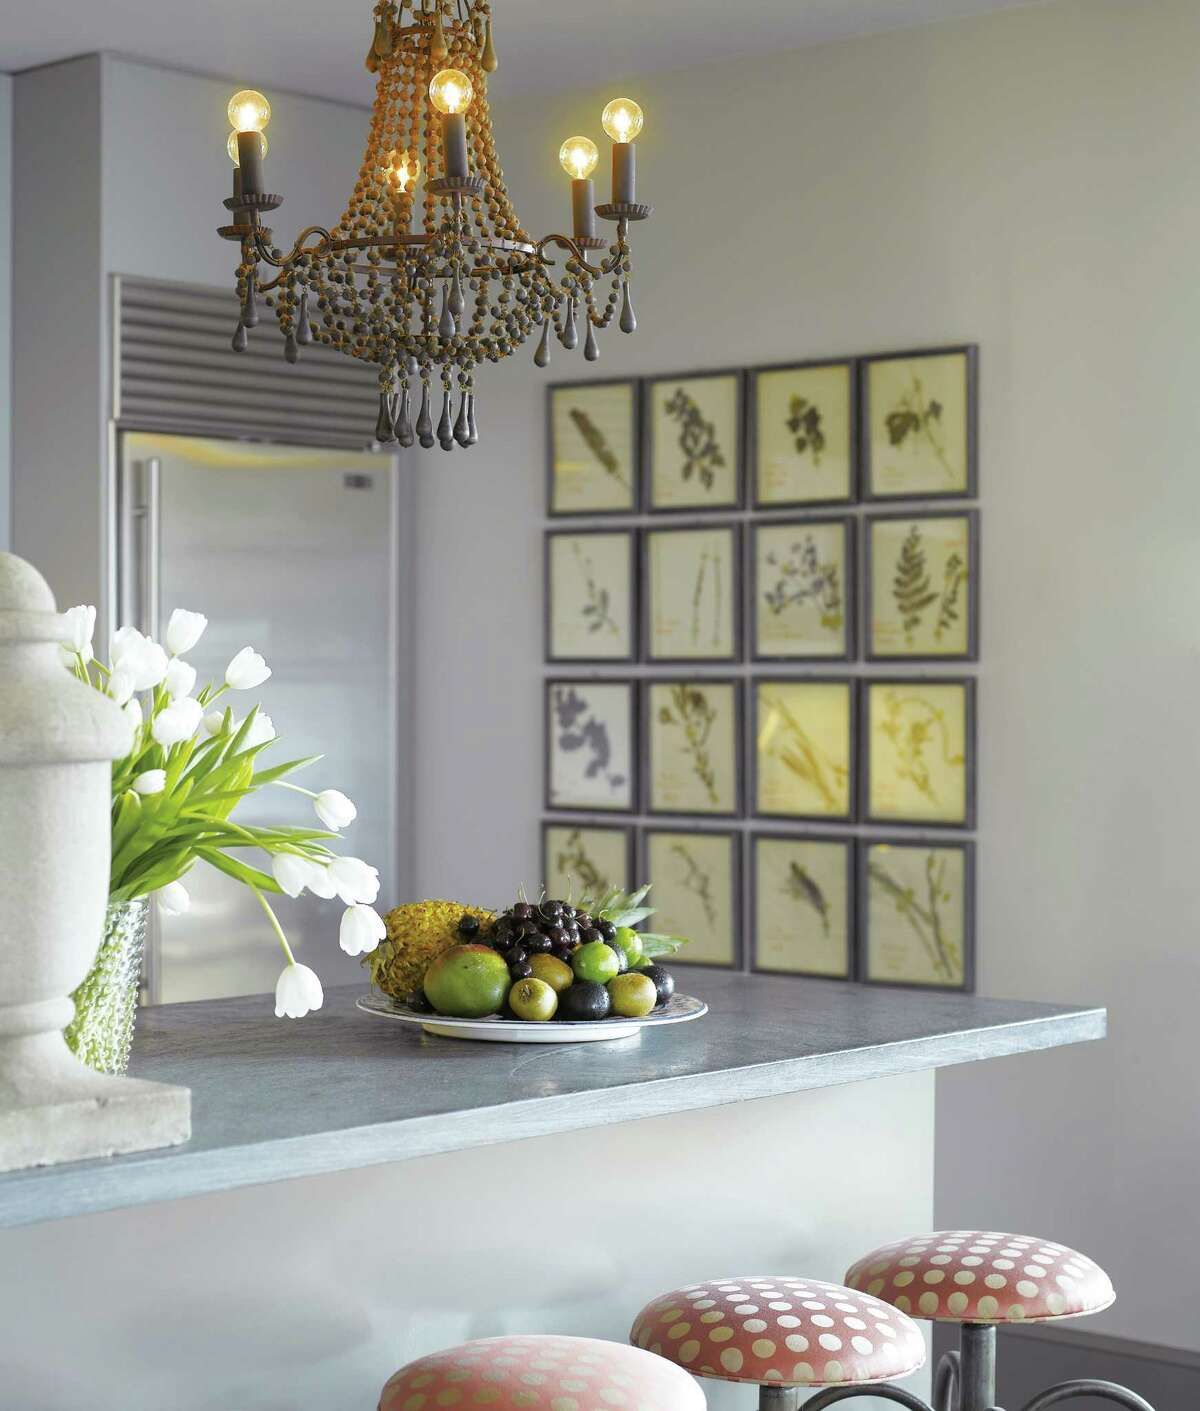 Molly Sims decorated her New York apartment with a feminine Parisian flair.